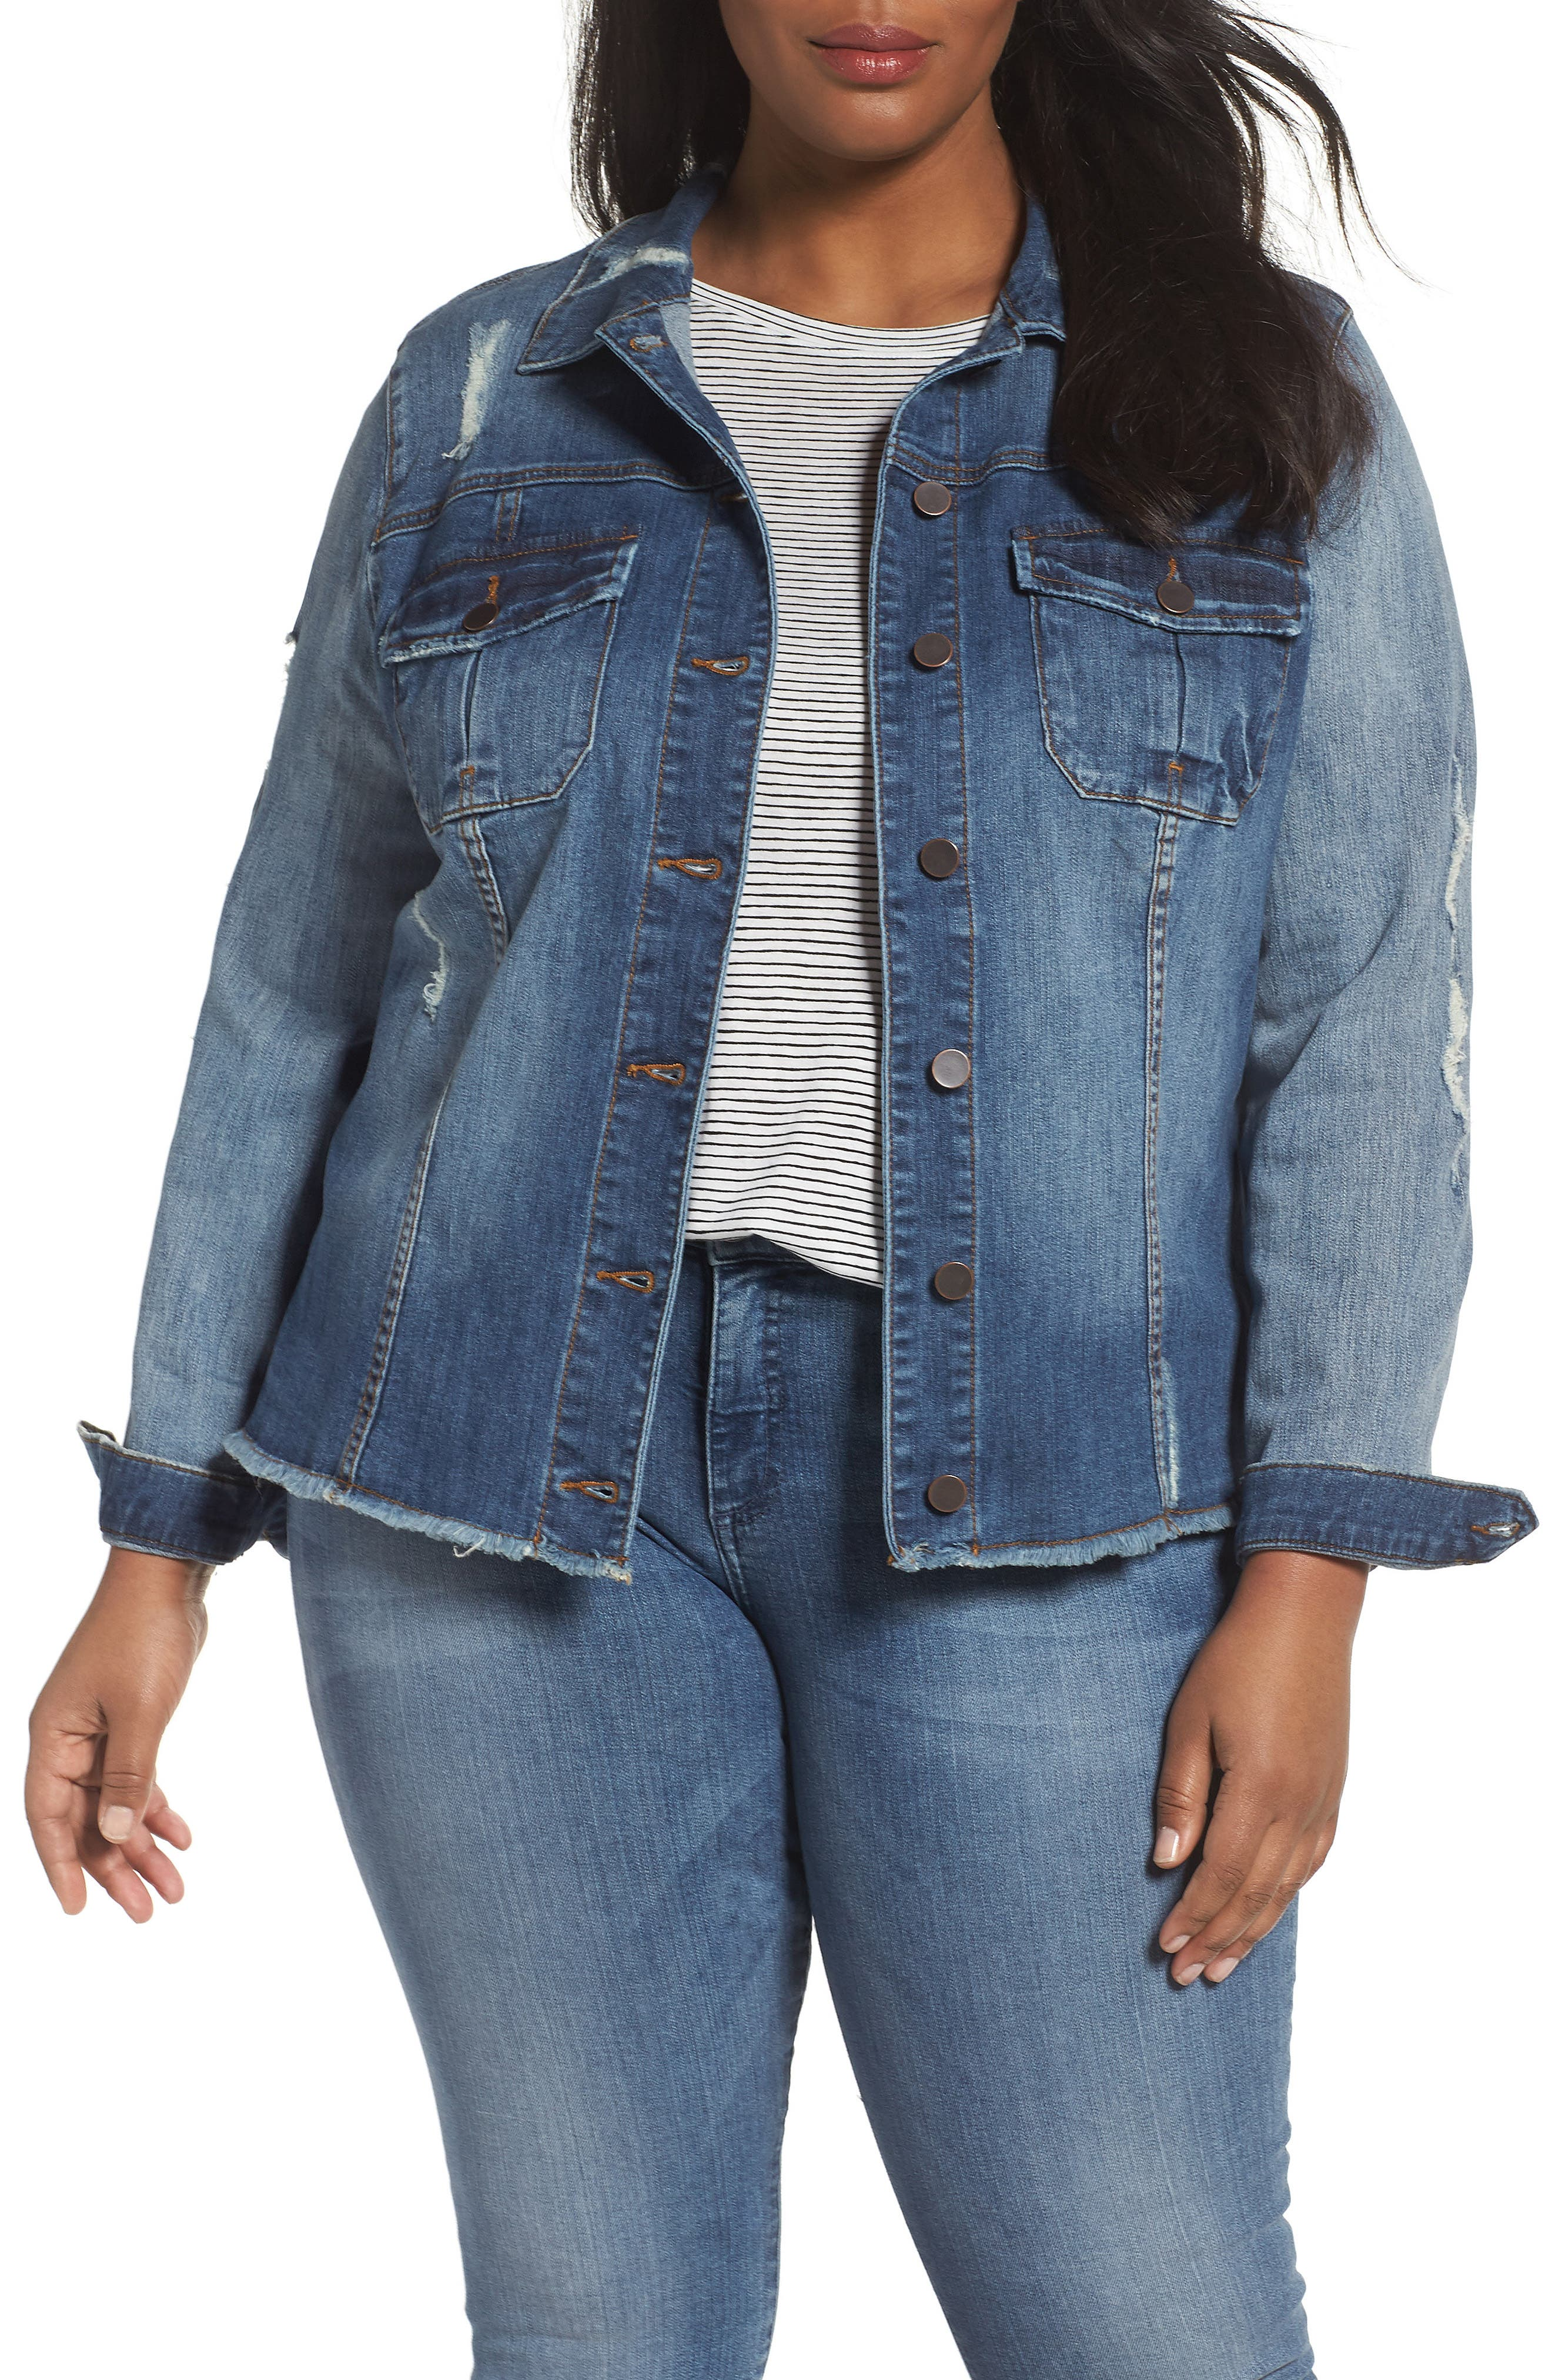 Main Image - KUT from the Kloth Distressed Denim Jacket (Plus Size)